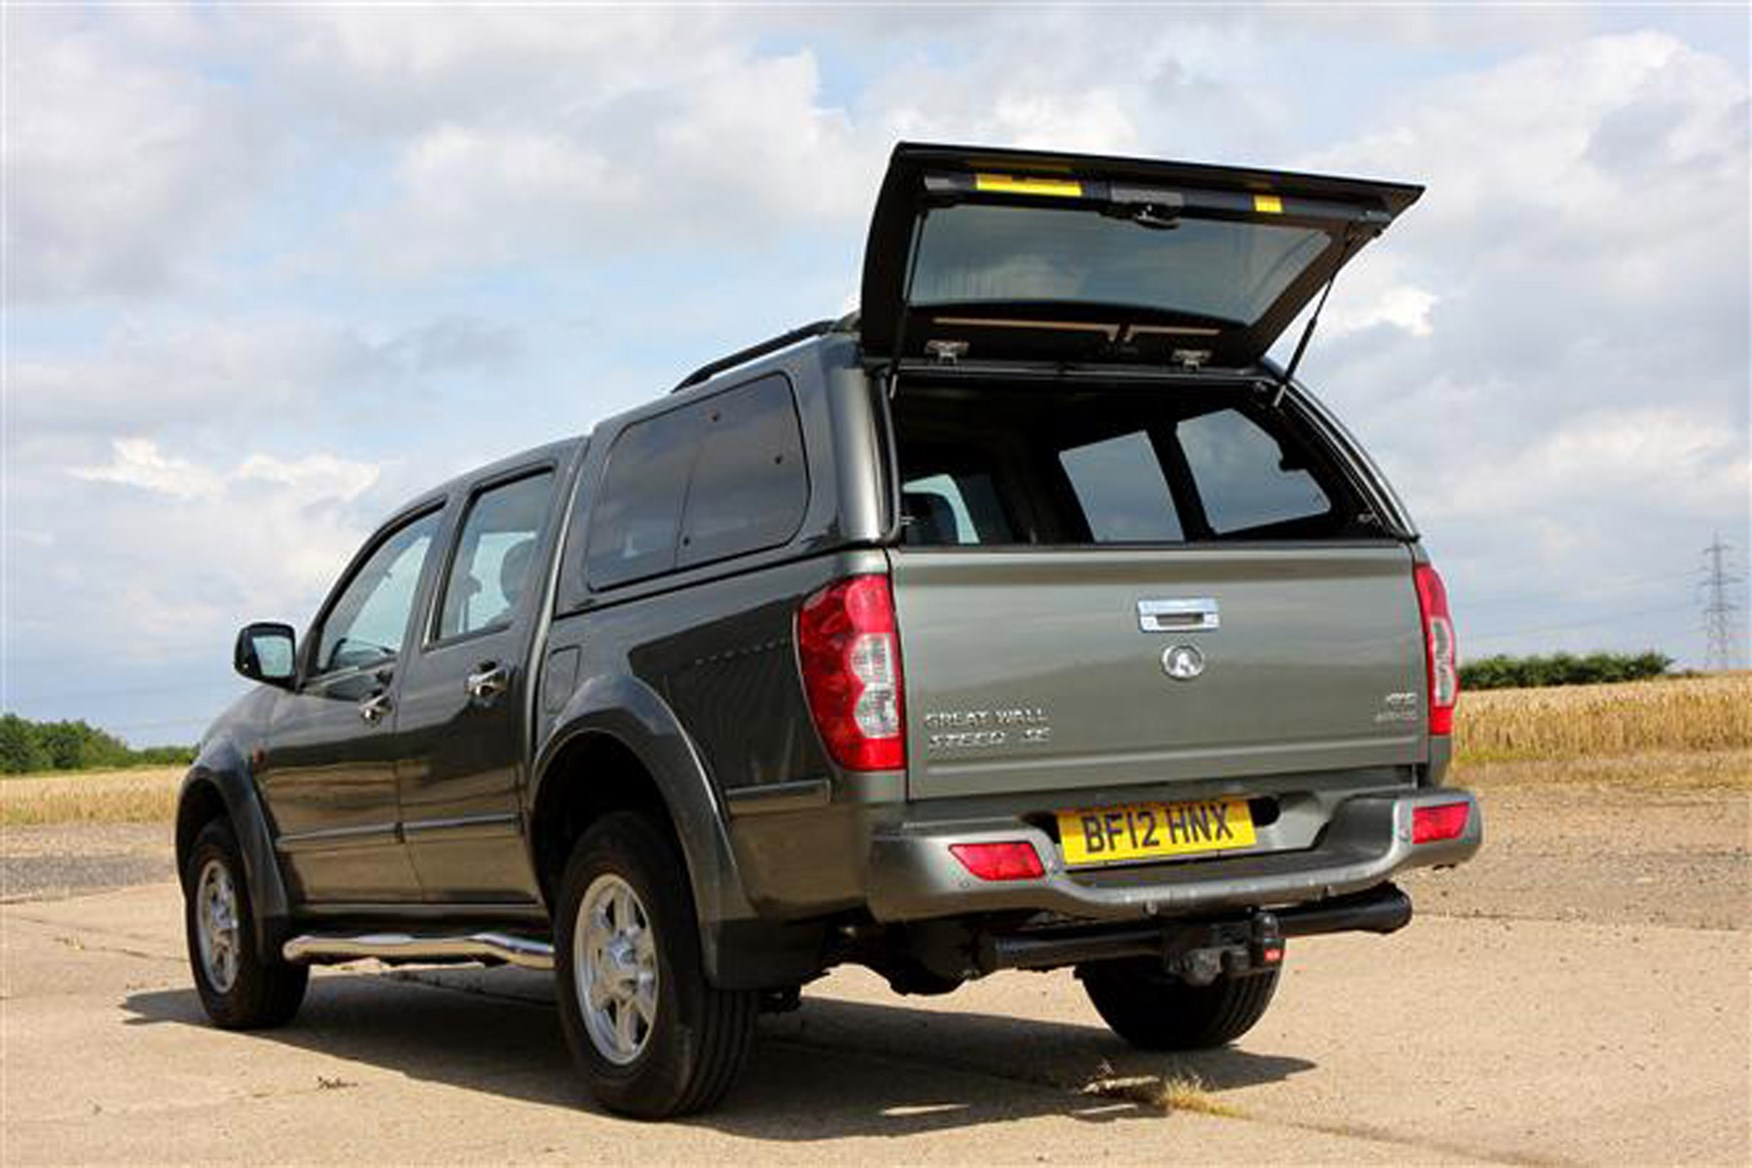 Great Wall Steed full review on Parkers Vans - load area access